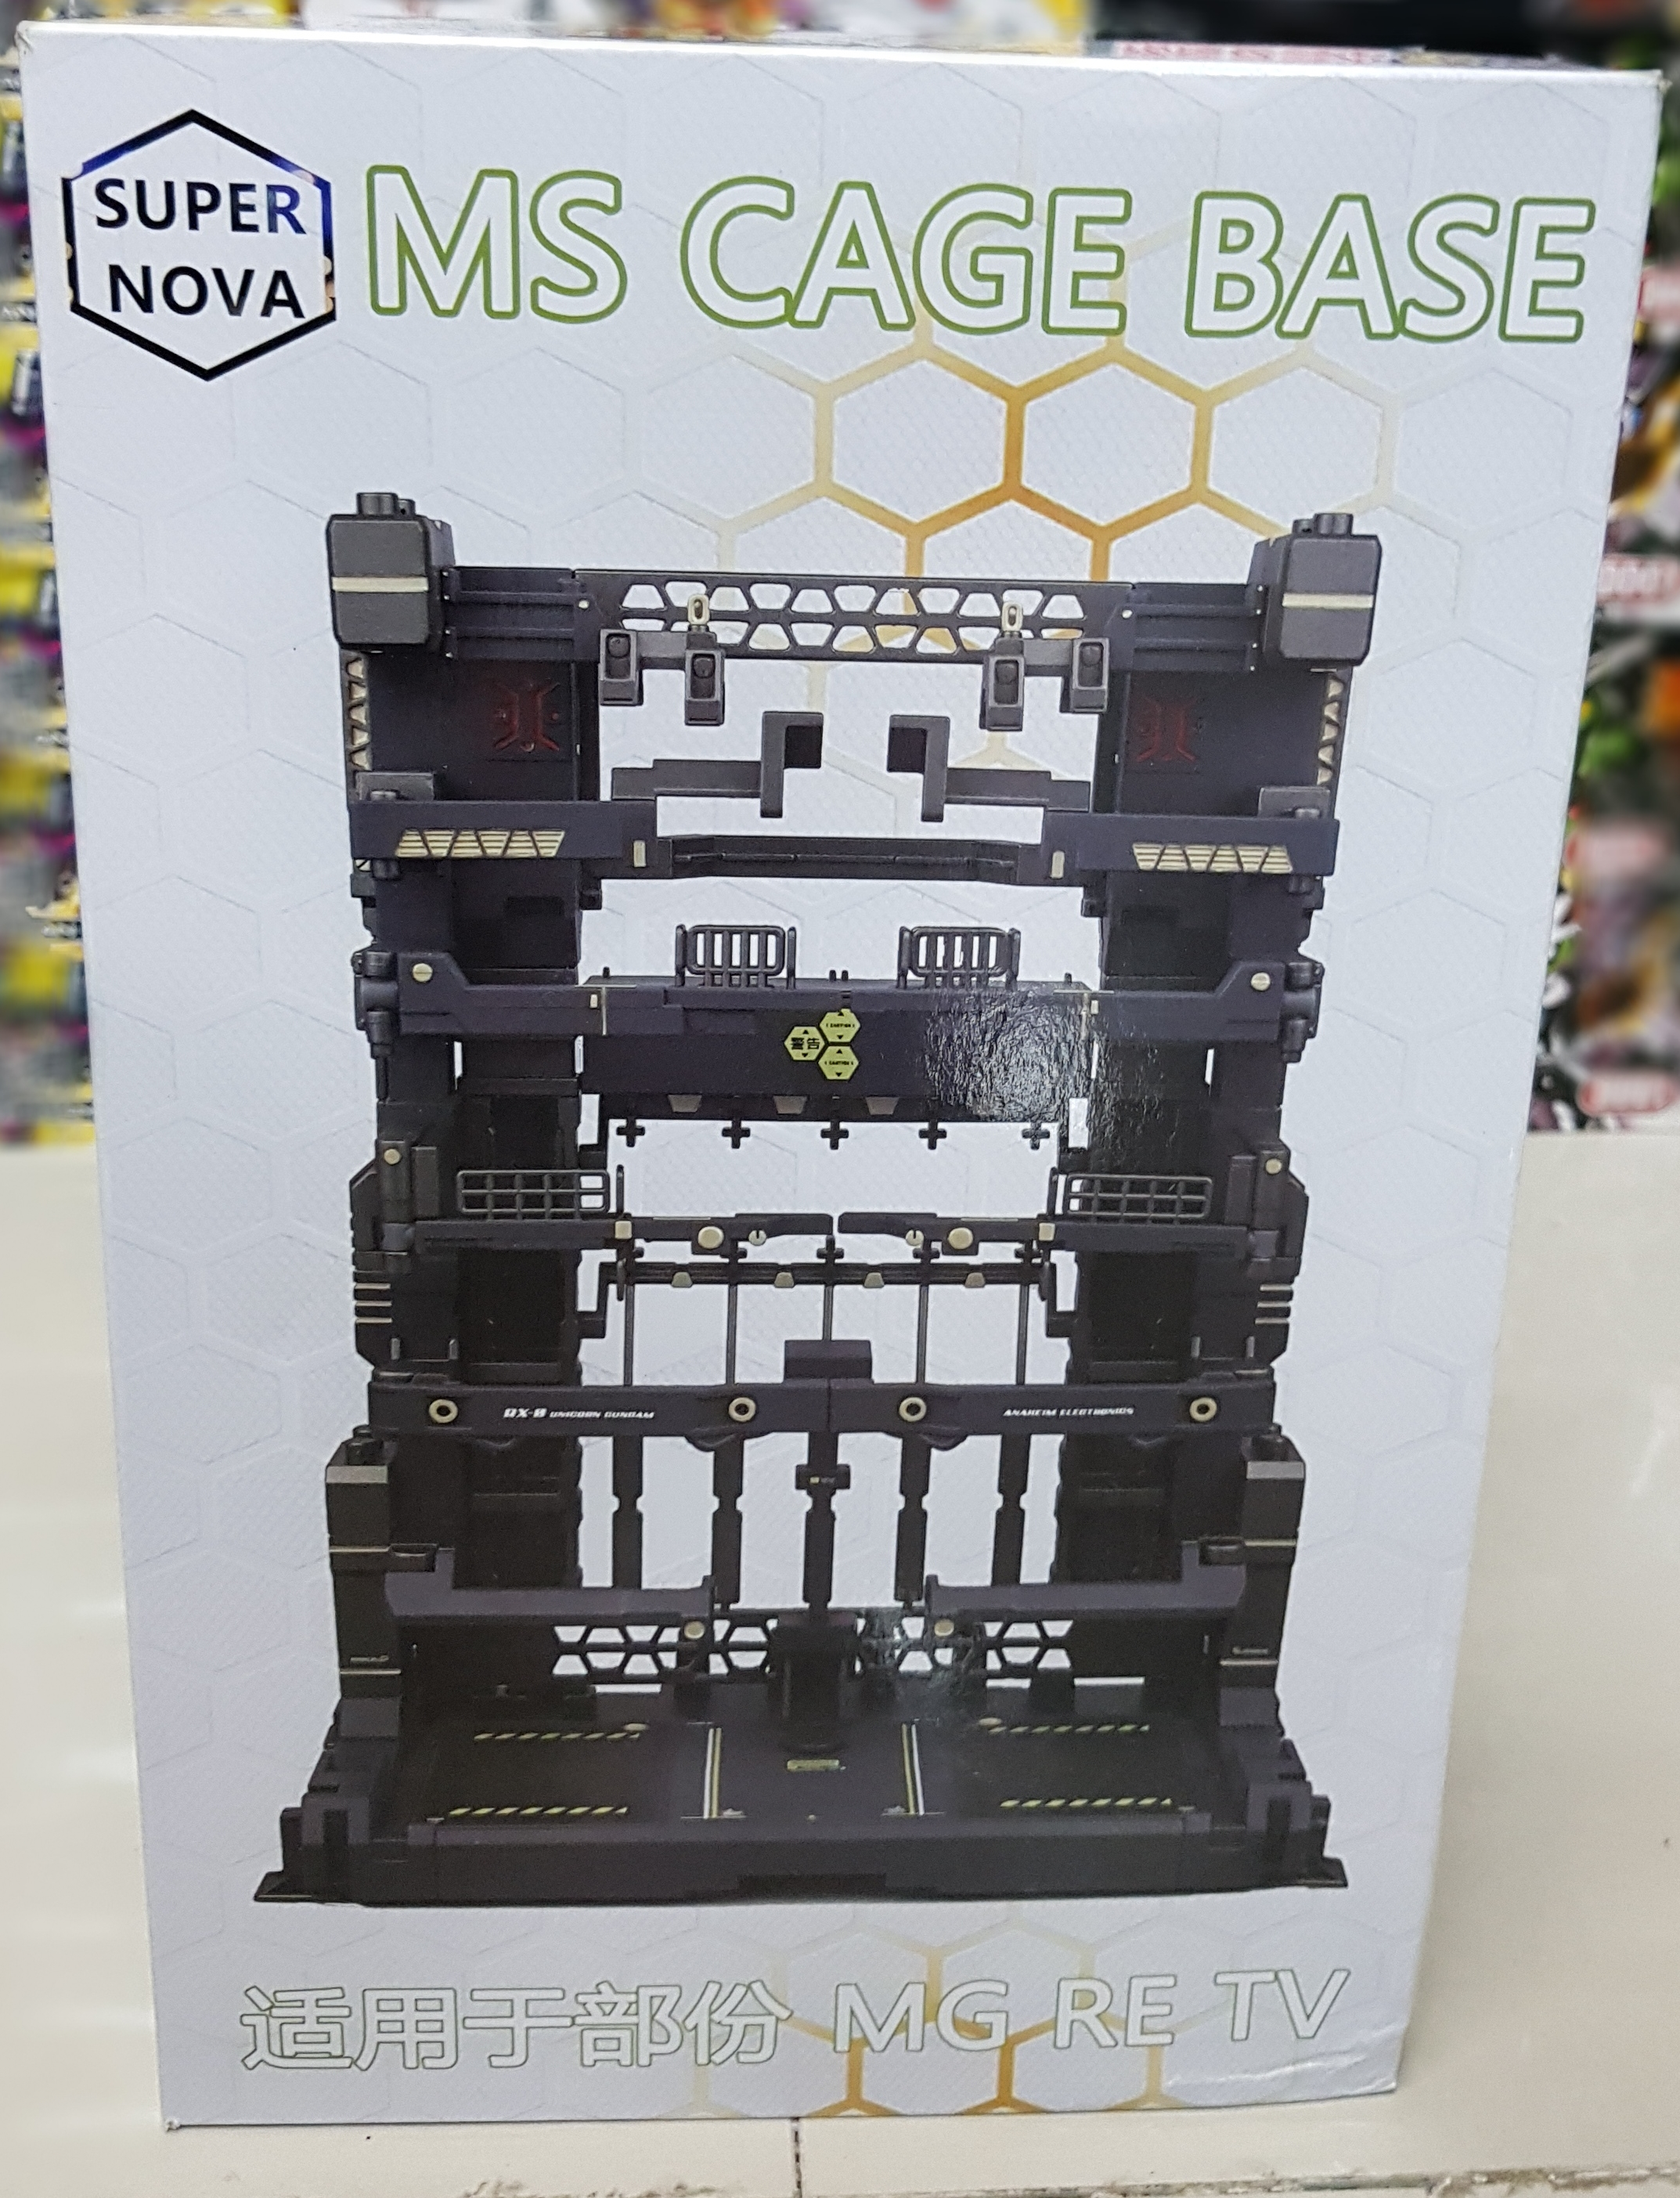 Ms Cage Base [Supernova]